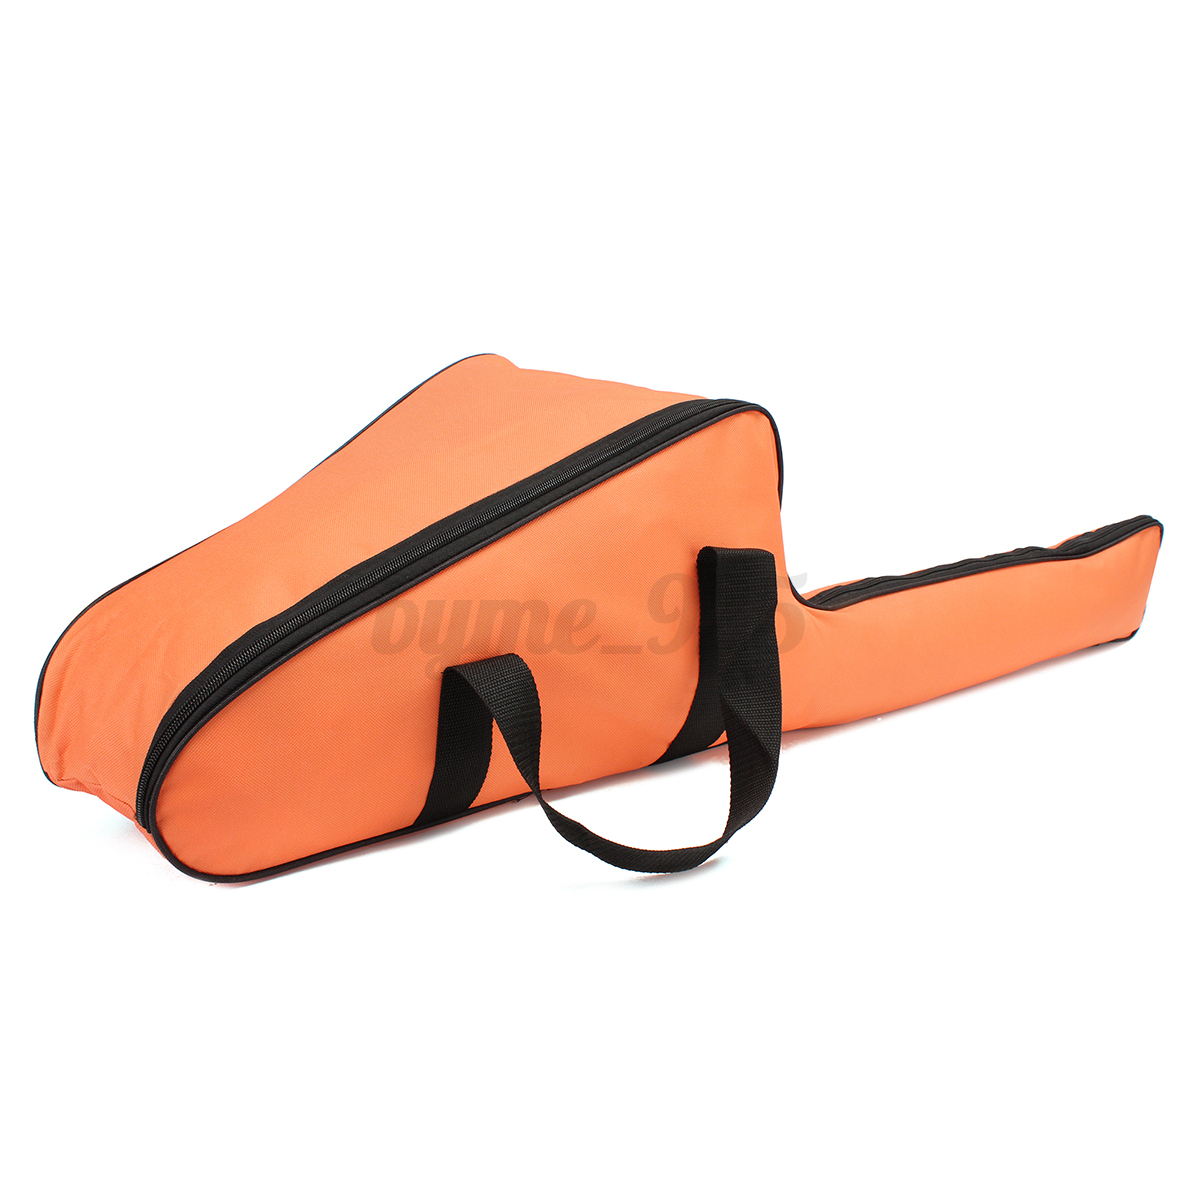 chain saw case Chainsaw cases and bags chainsaw bags and boxes classic carry case us chainsaw accessories.